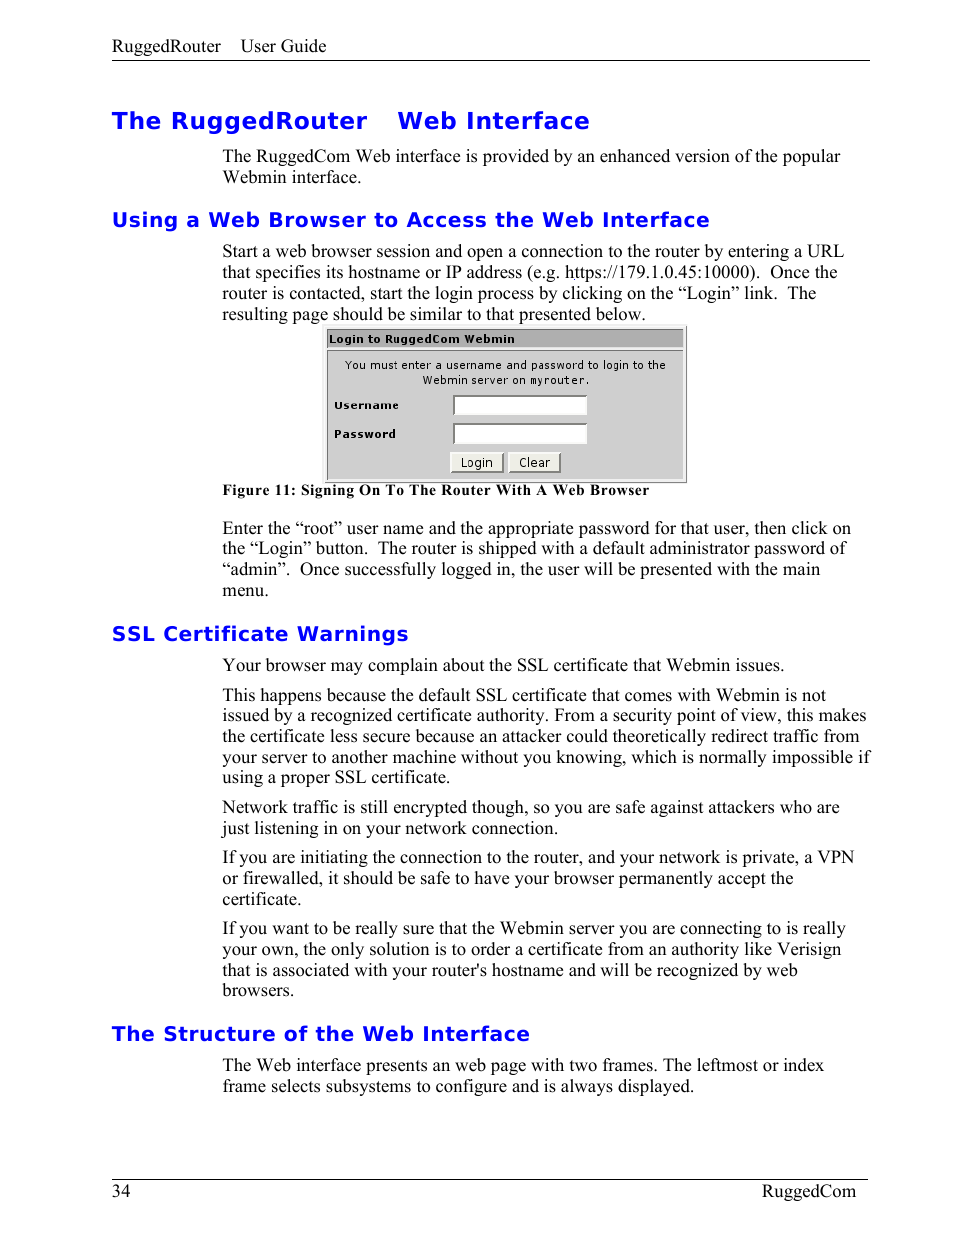 The Ruggedrouter Web Interface Using A Web Browser To Access The